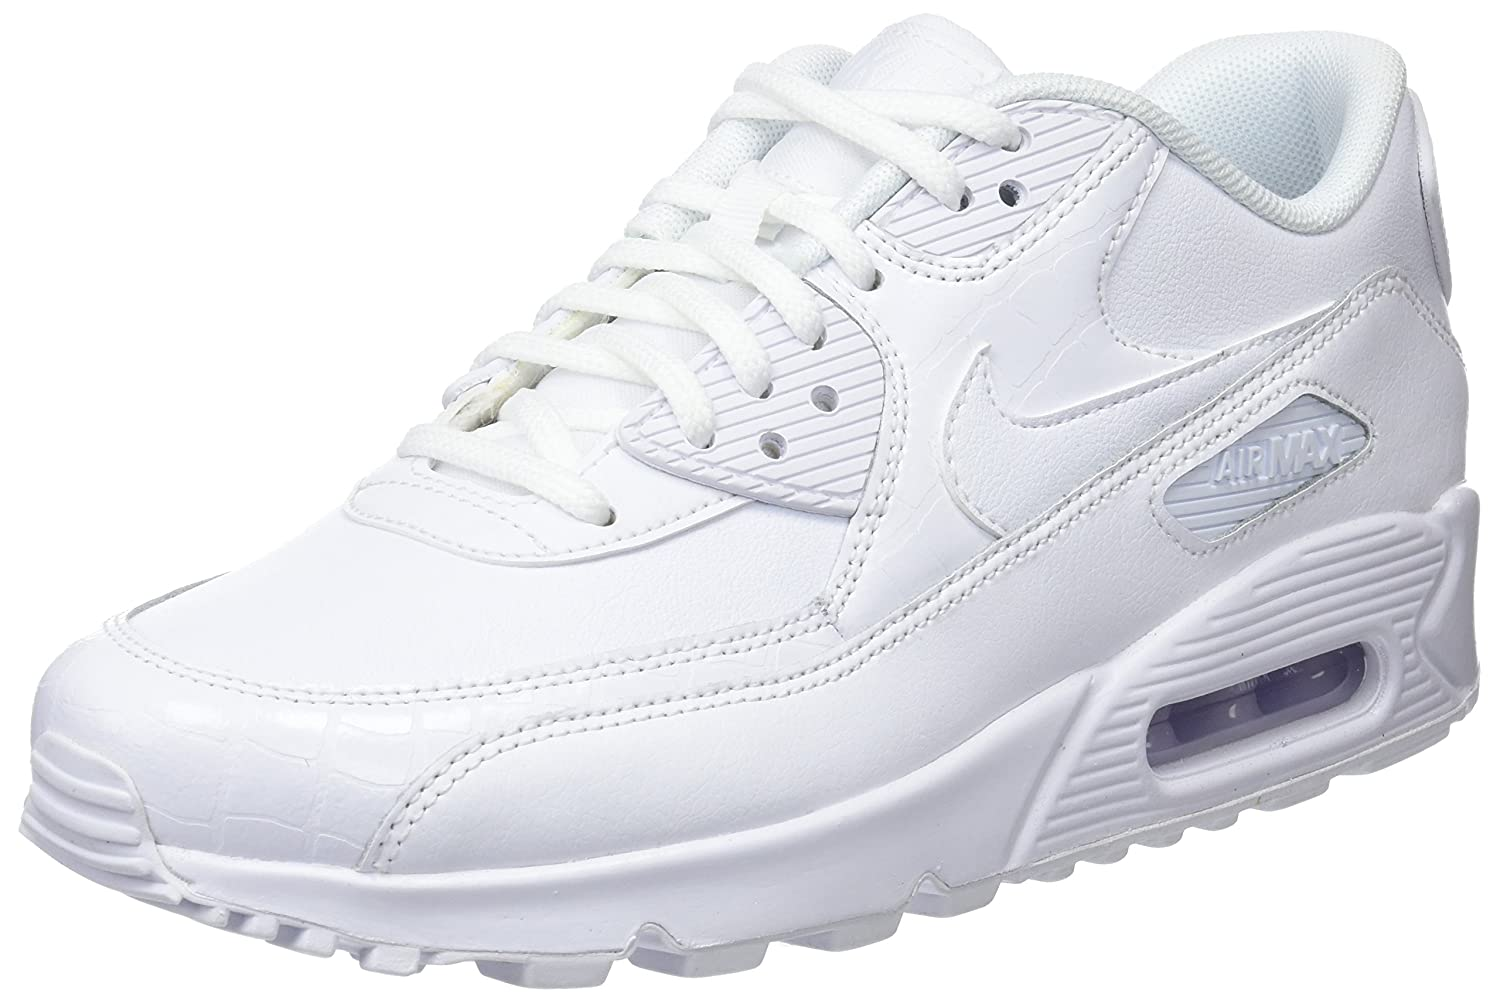 9f3106ef51439 Nike Women's Air Max 90 Sneaker, White 133, 7 UK: Amazon.com